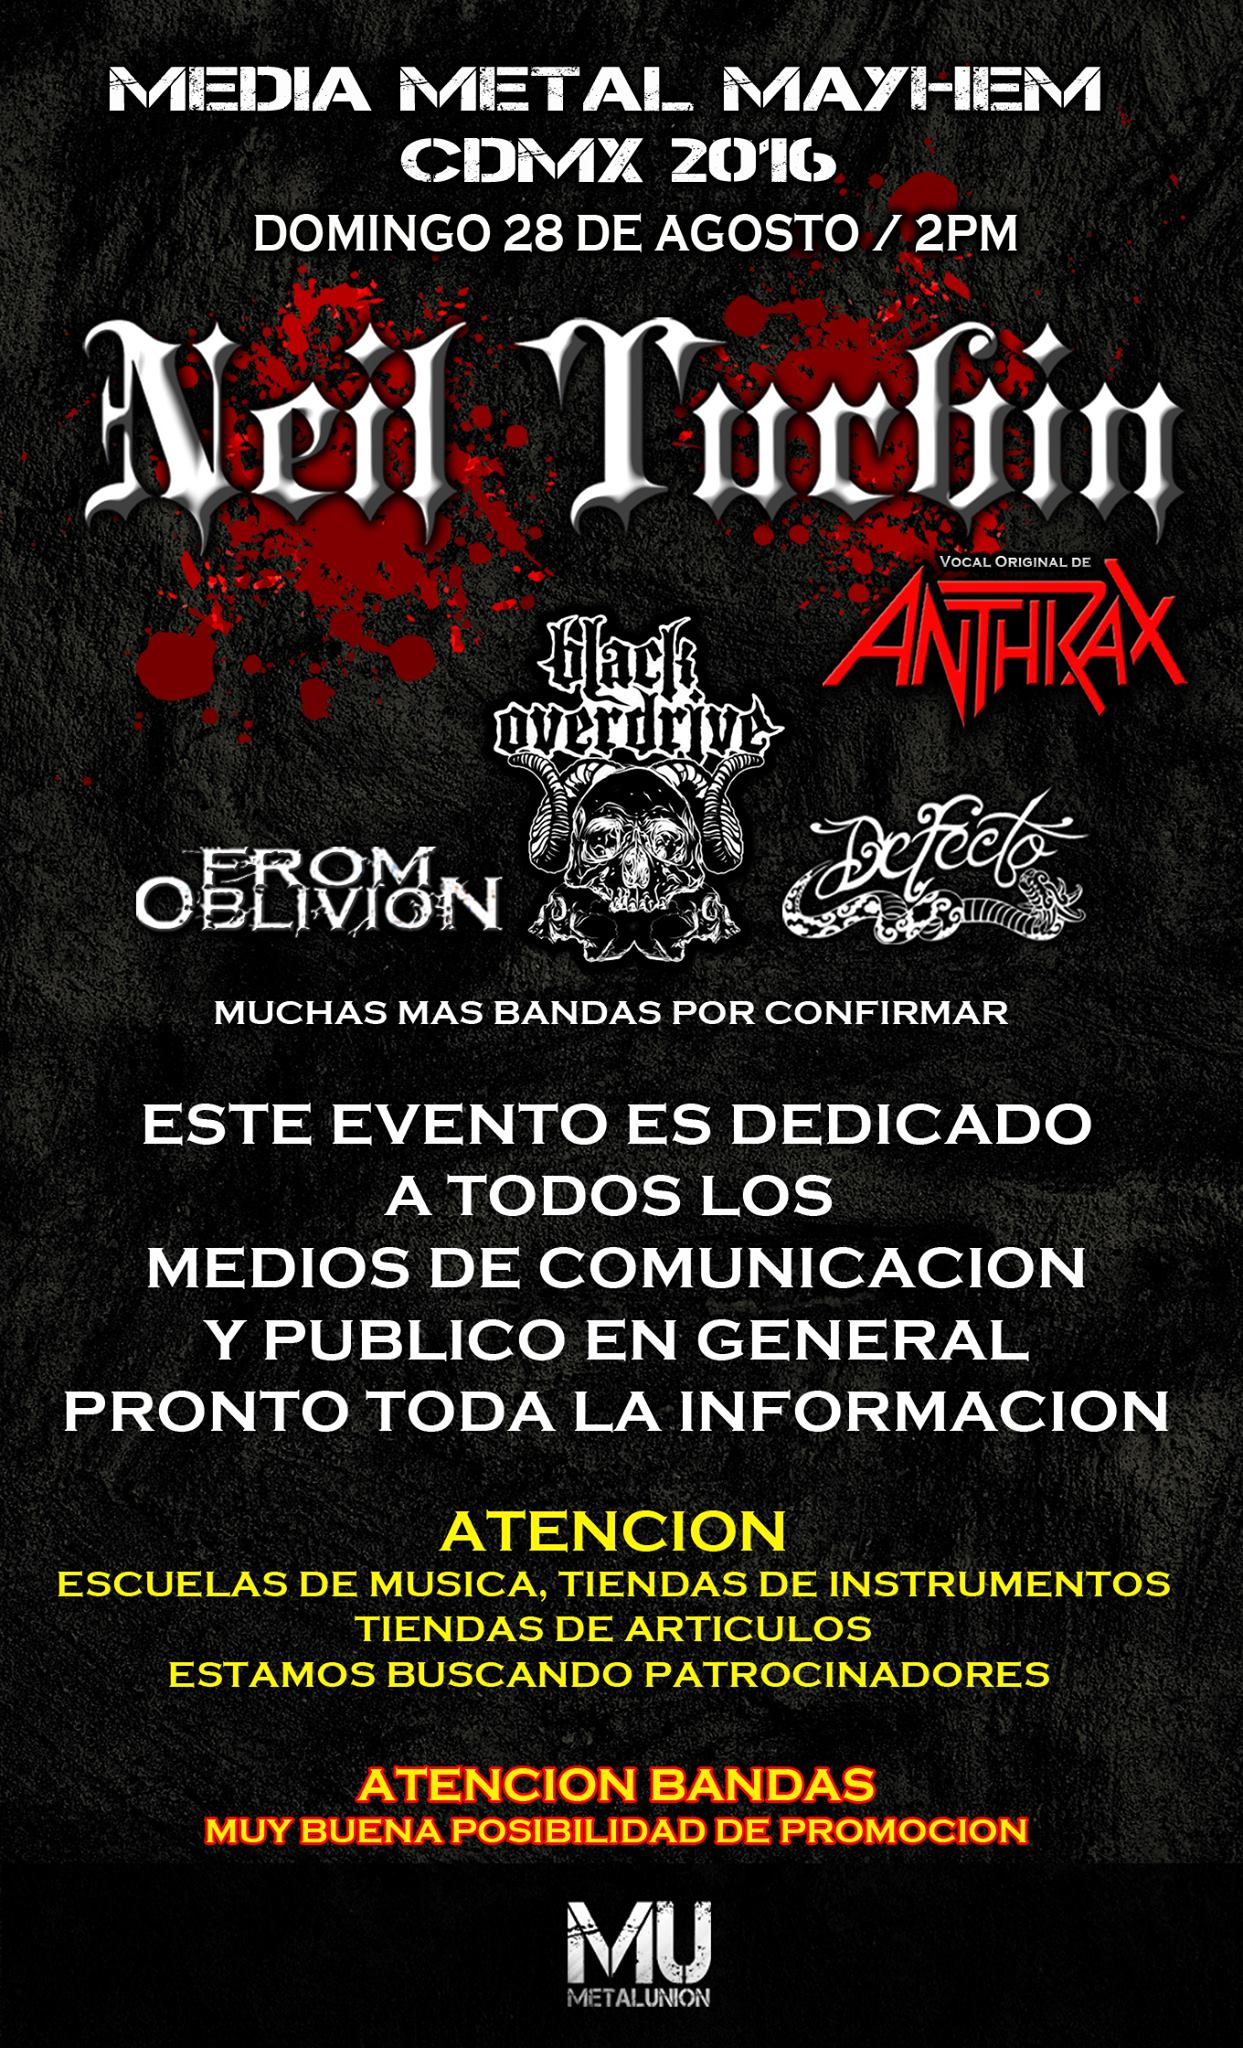 Neil Turbin The Metal Beast Is Back Tour Latin America 2016 Distrito Federal, Mexico 8/28/2016